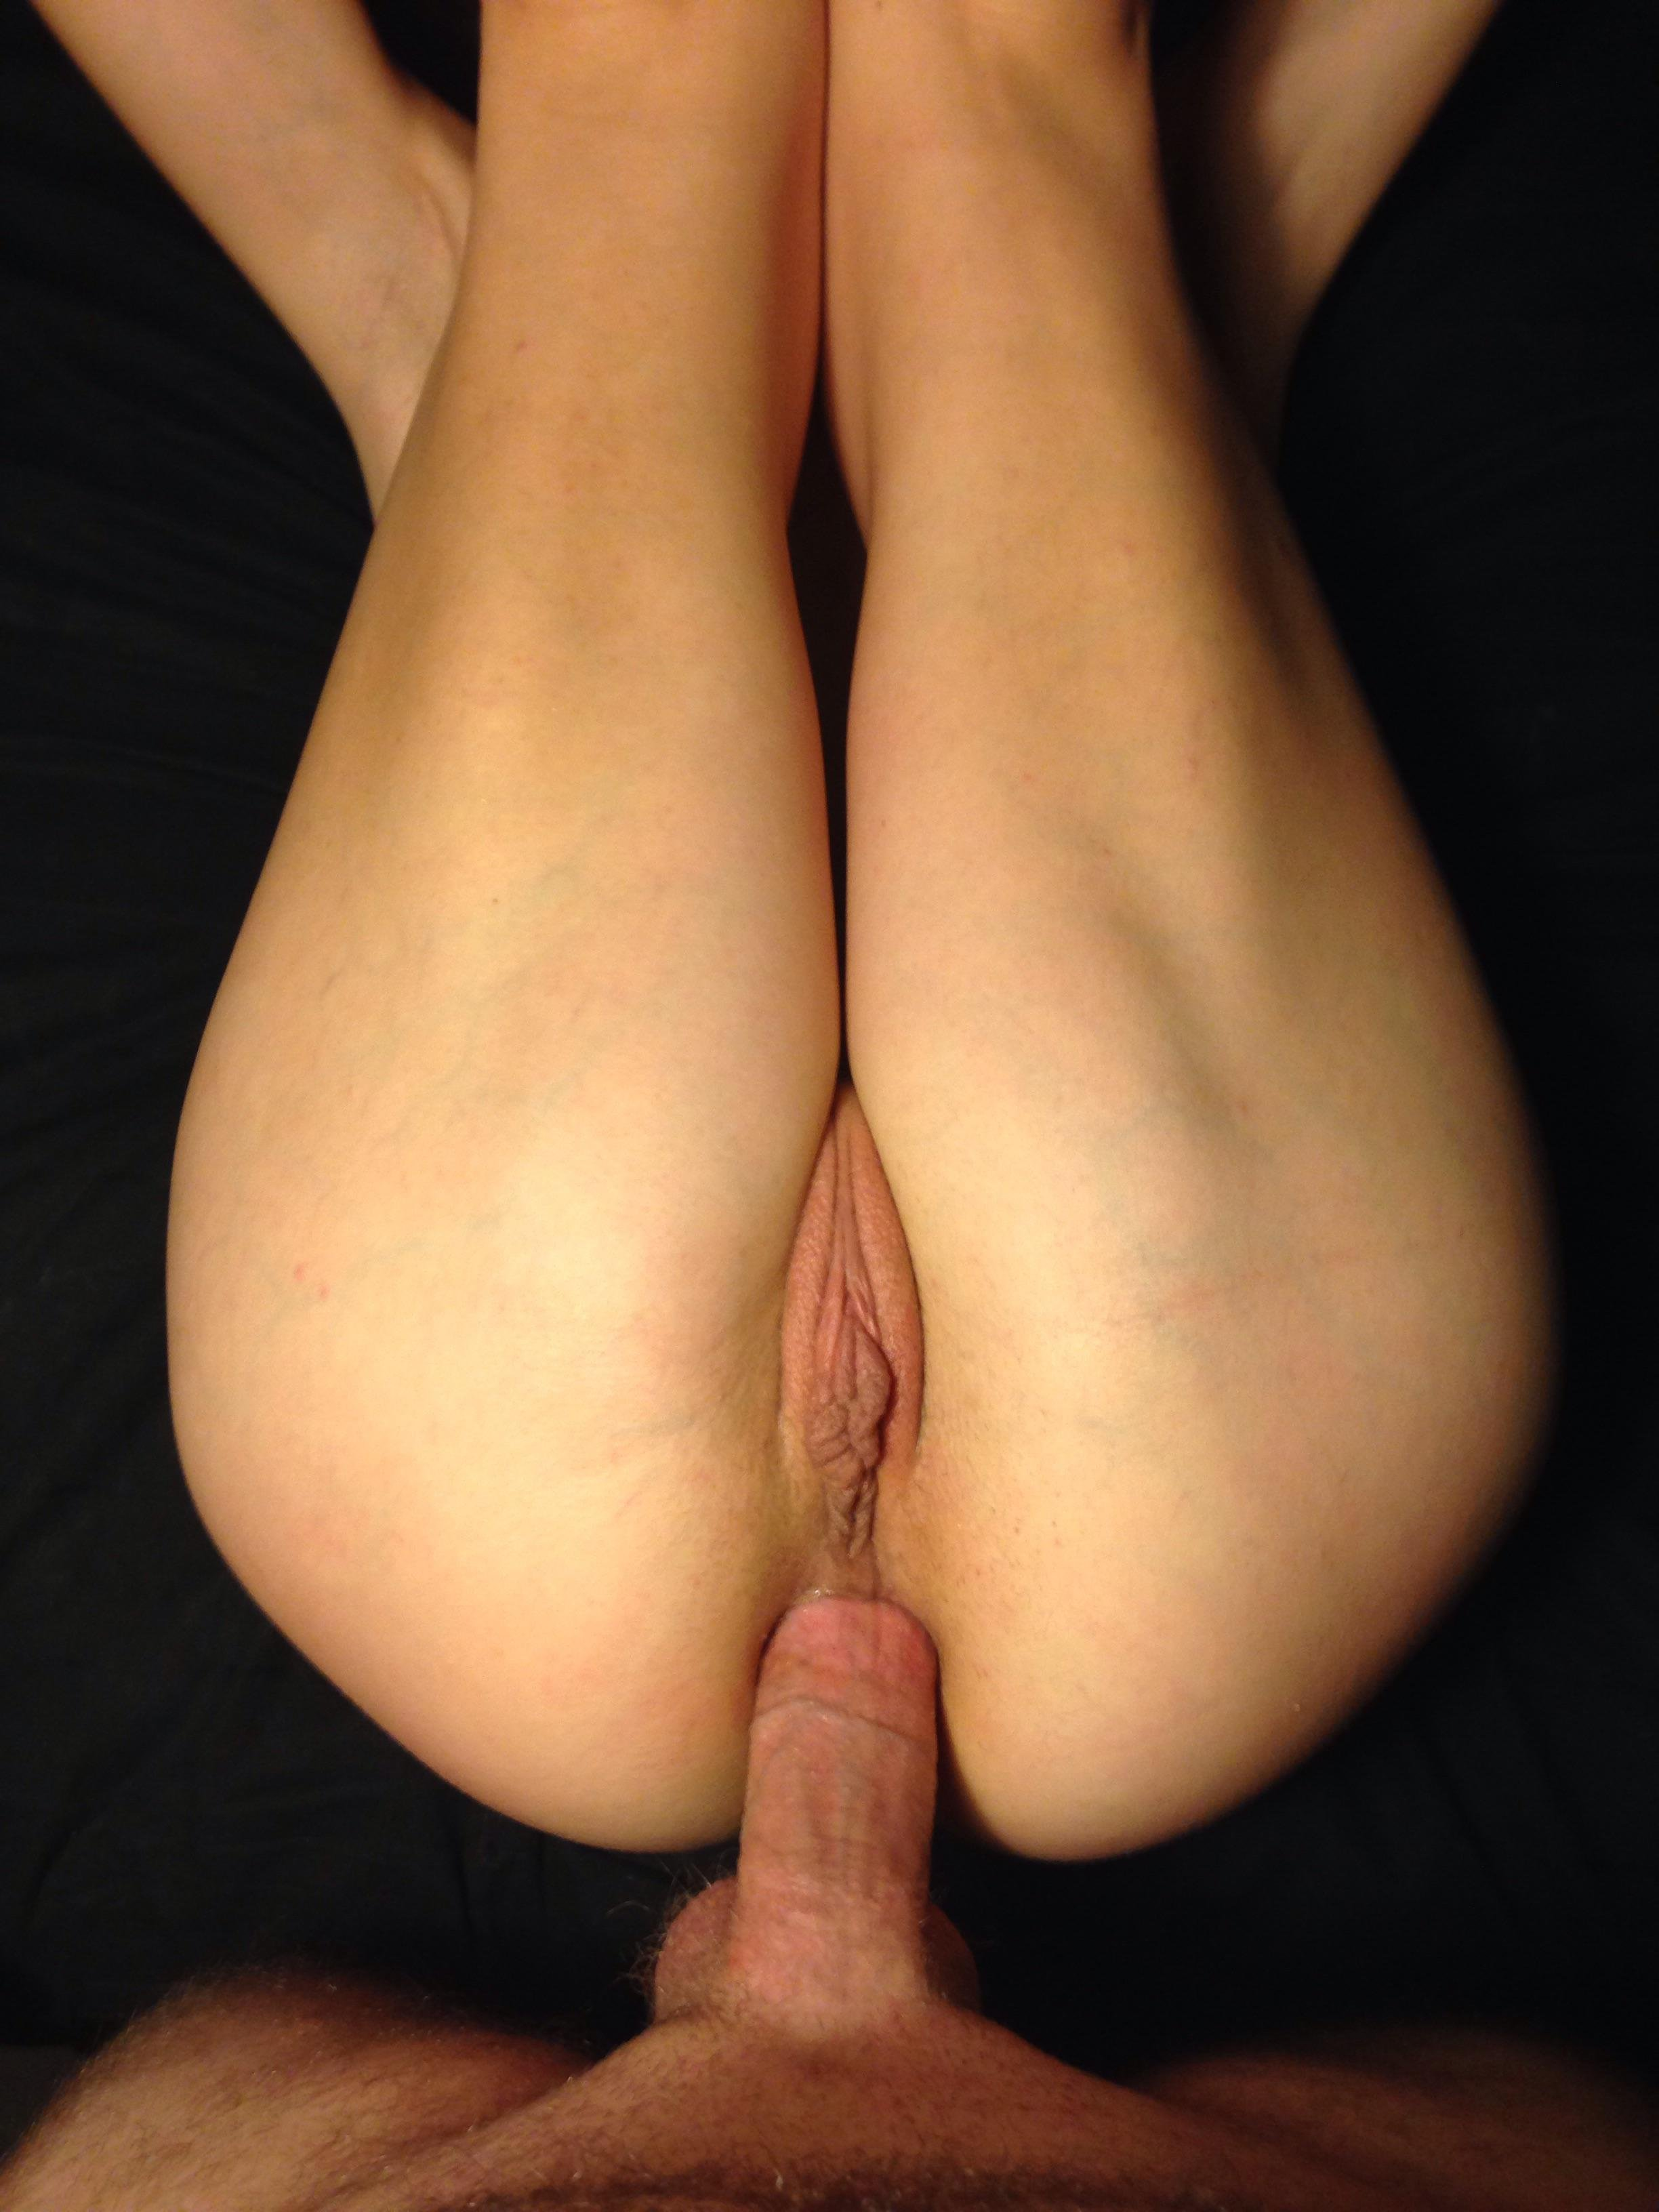 Just so(m)e anal (f)un